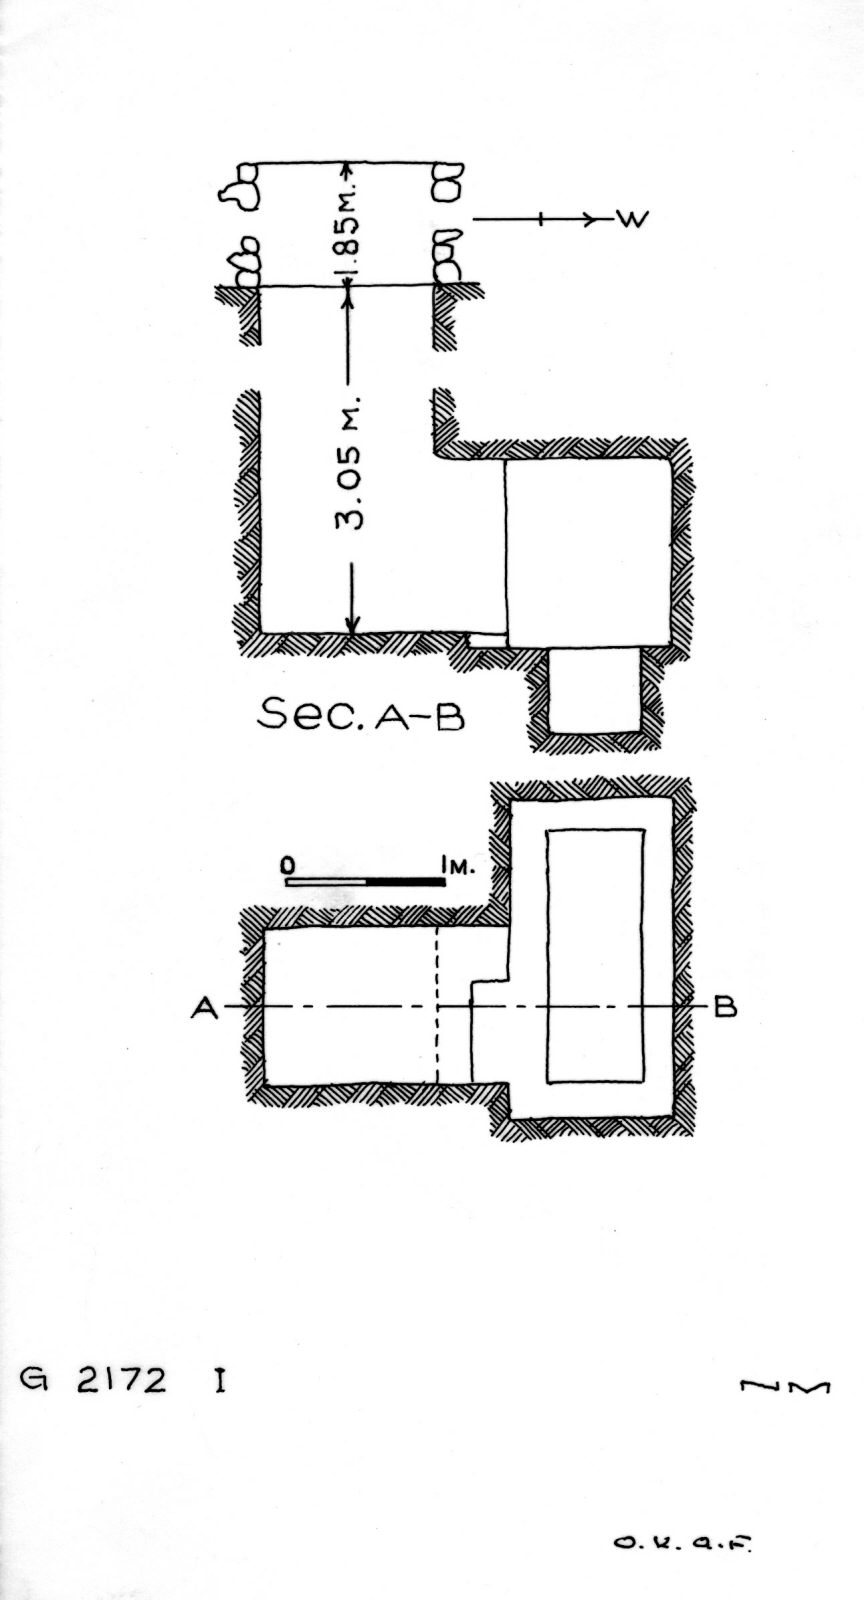 Maps and plans: G 2172, Shaft I